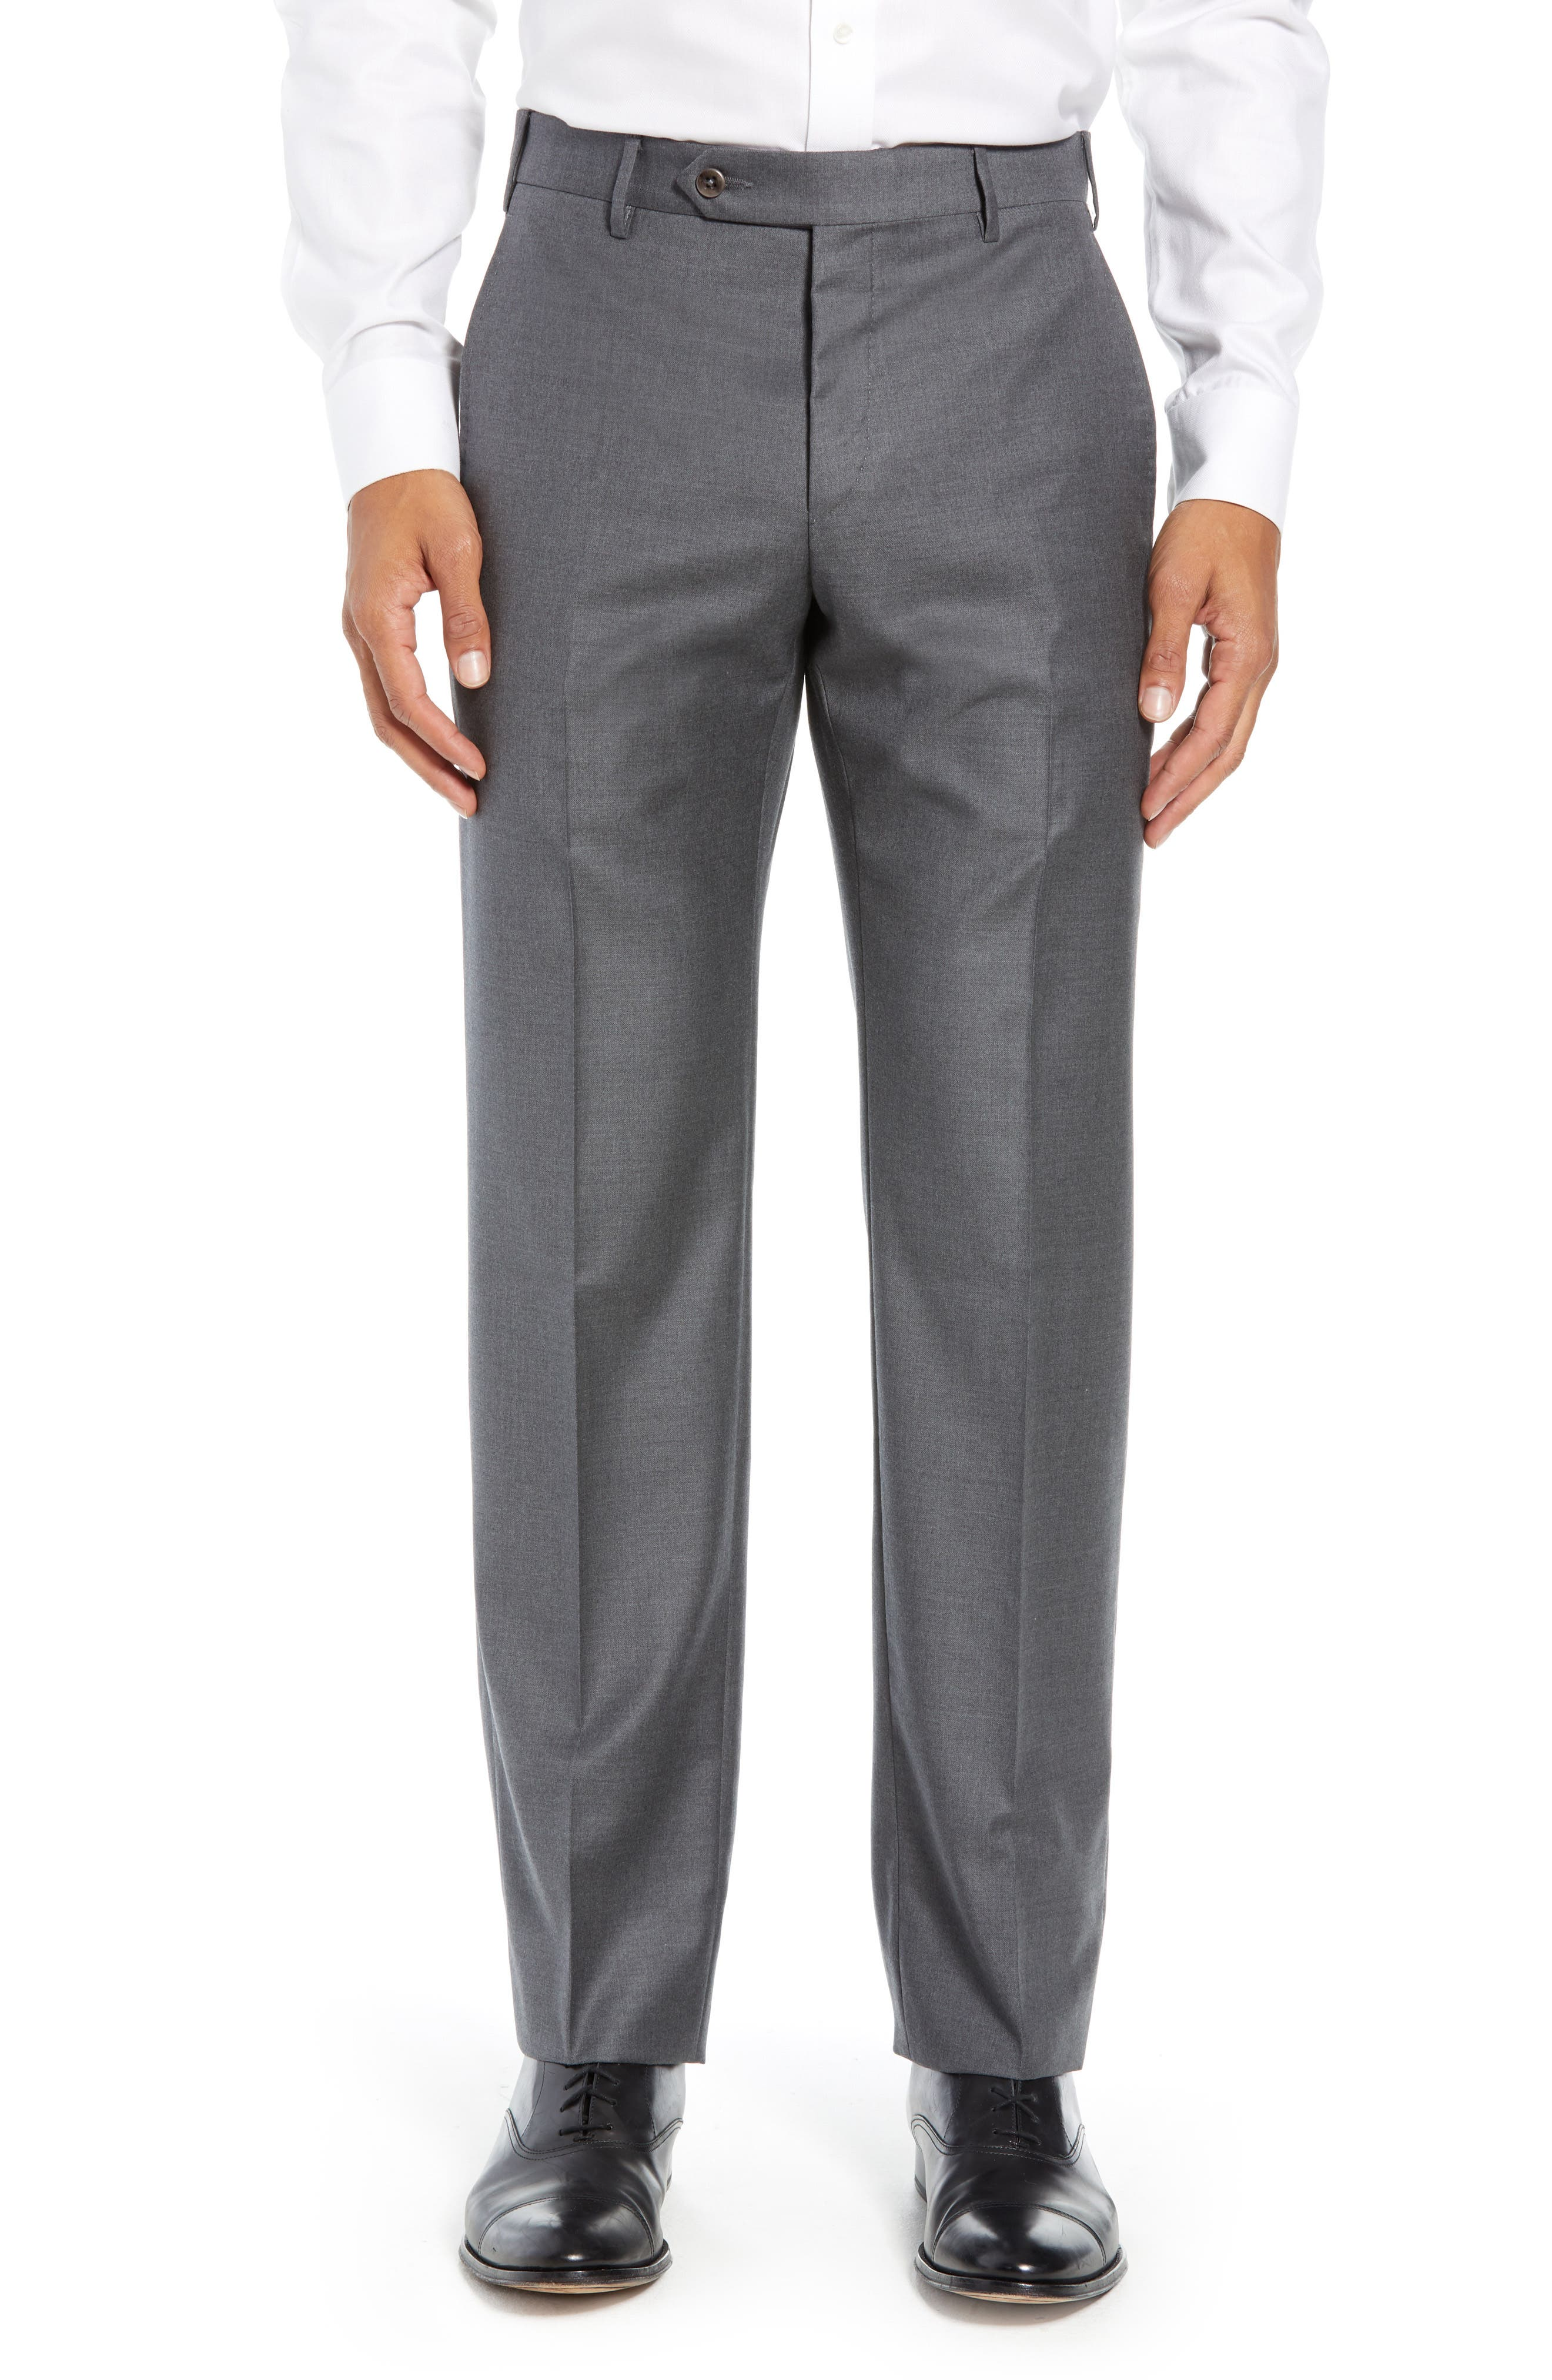 ZANELLA Parker Flat Front Solid Wool Trousers in Mid Grey